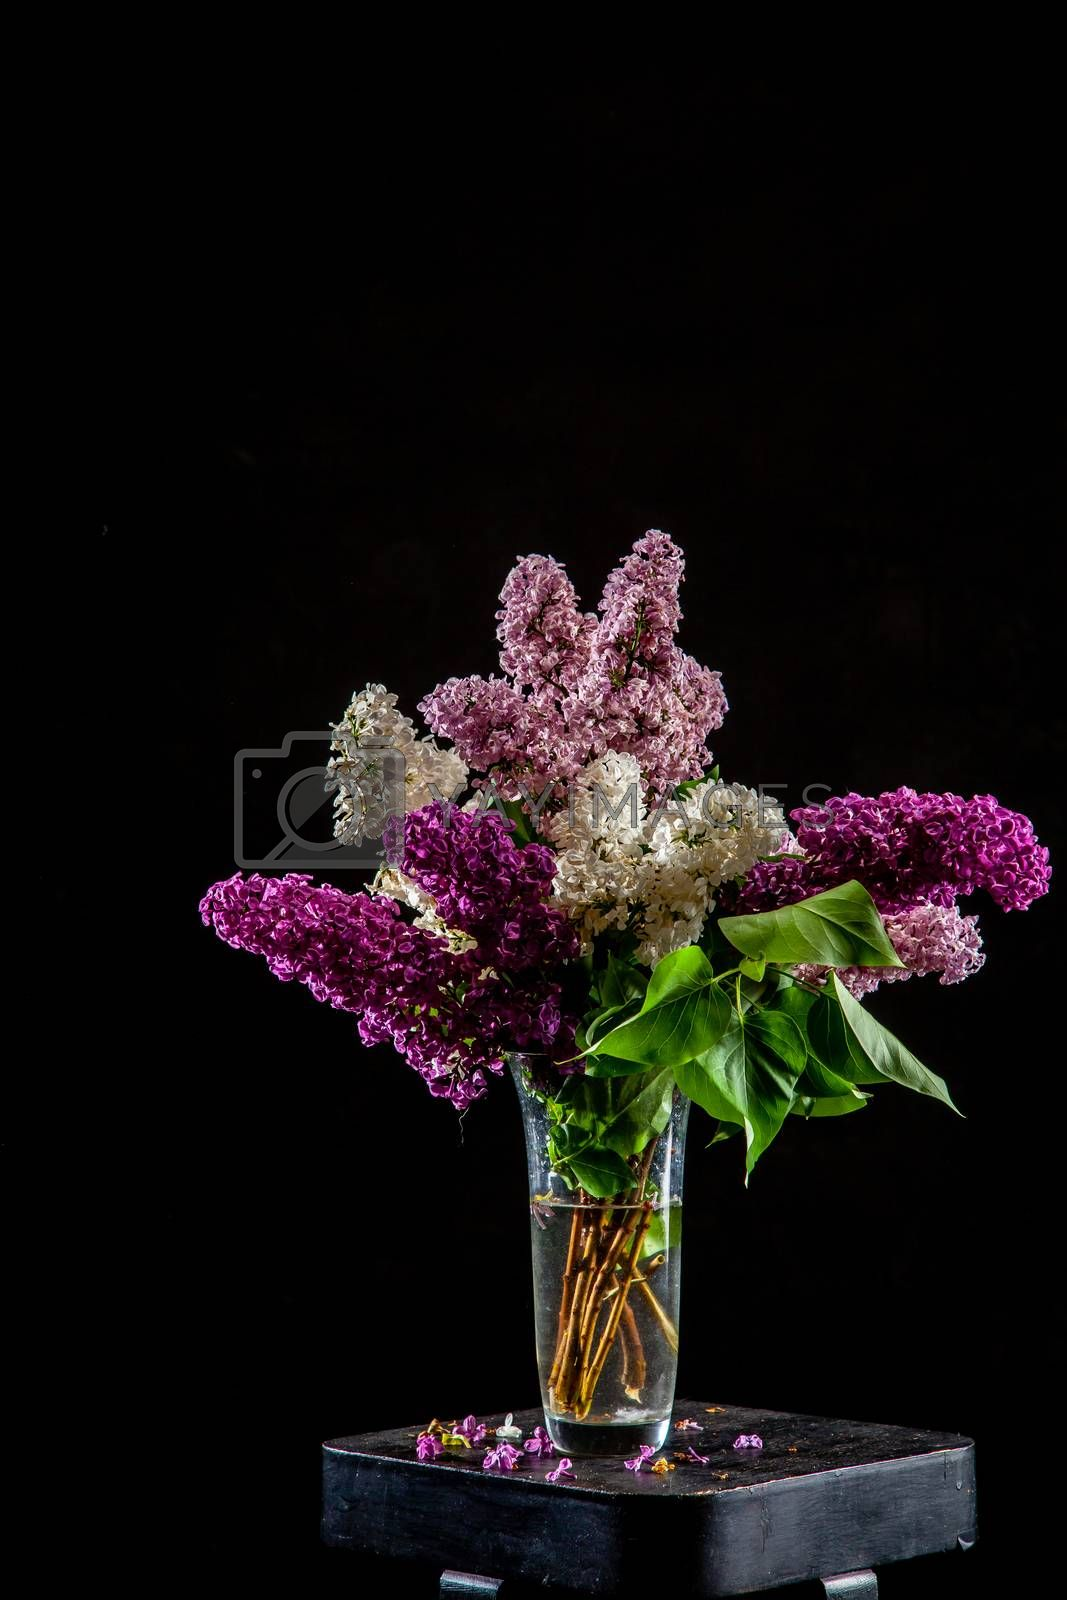 White and purple branches of lilac in glass vase on black background. Spring branch of blooming lilac on the table with black background. Fallen lilac flowers on the table.